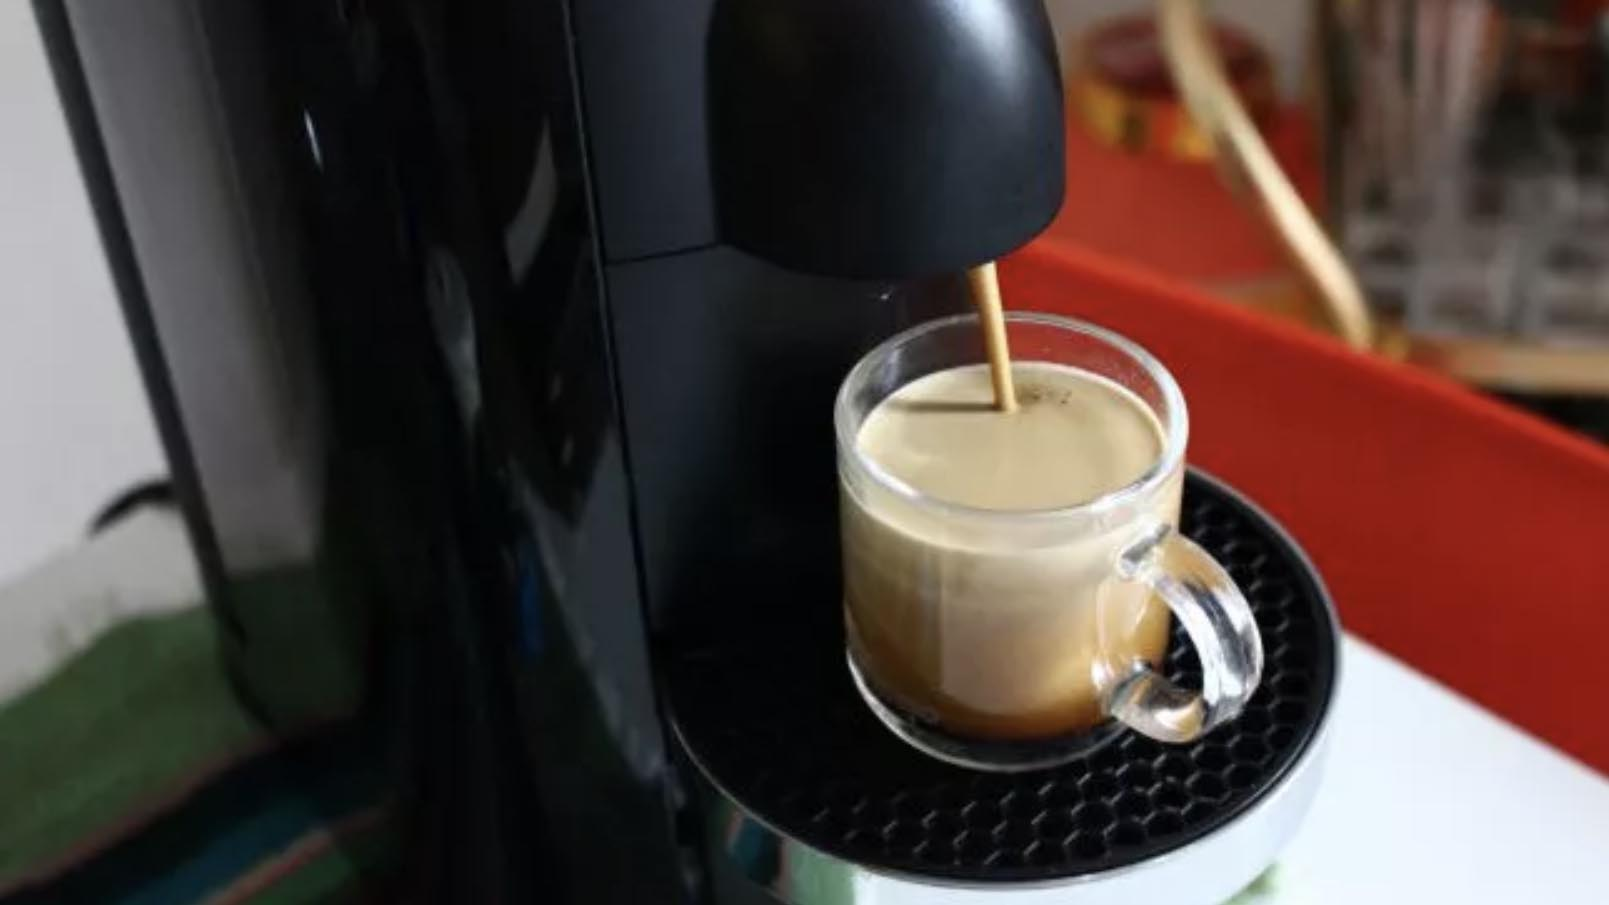 Perfecte koffiemachine